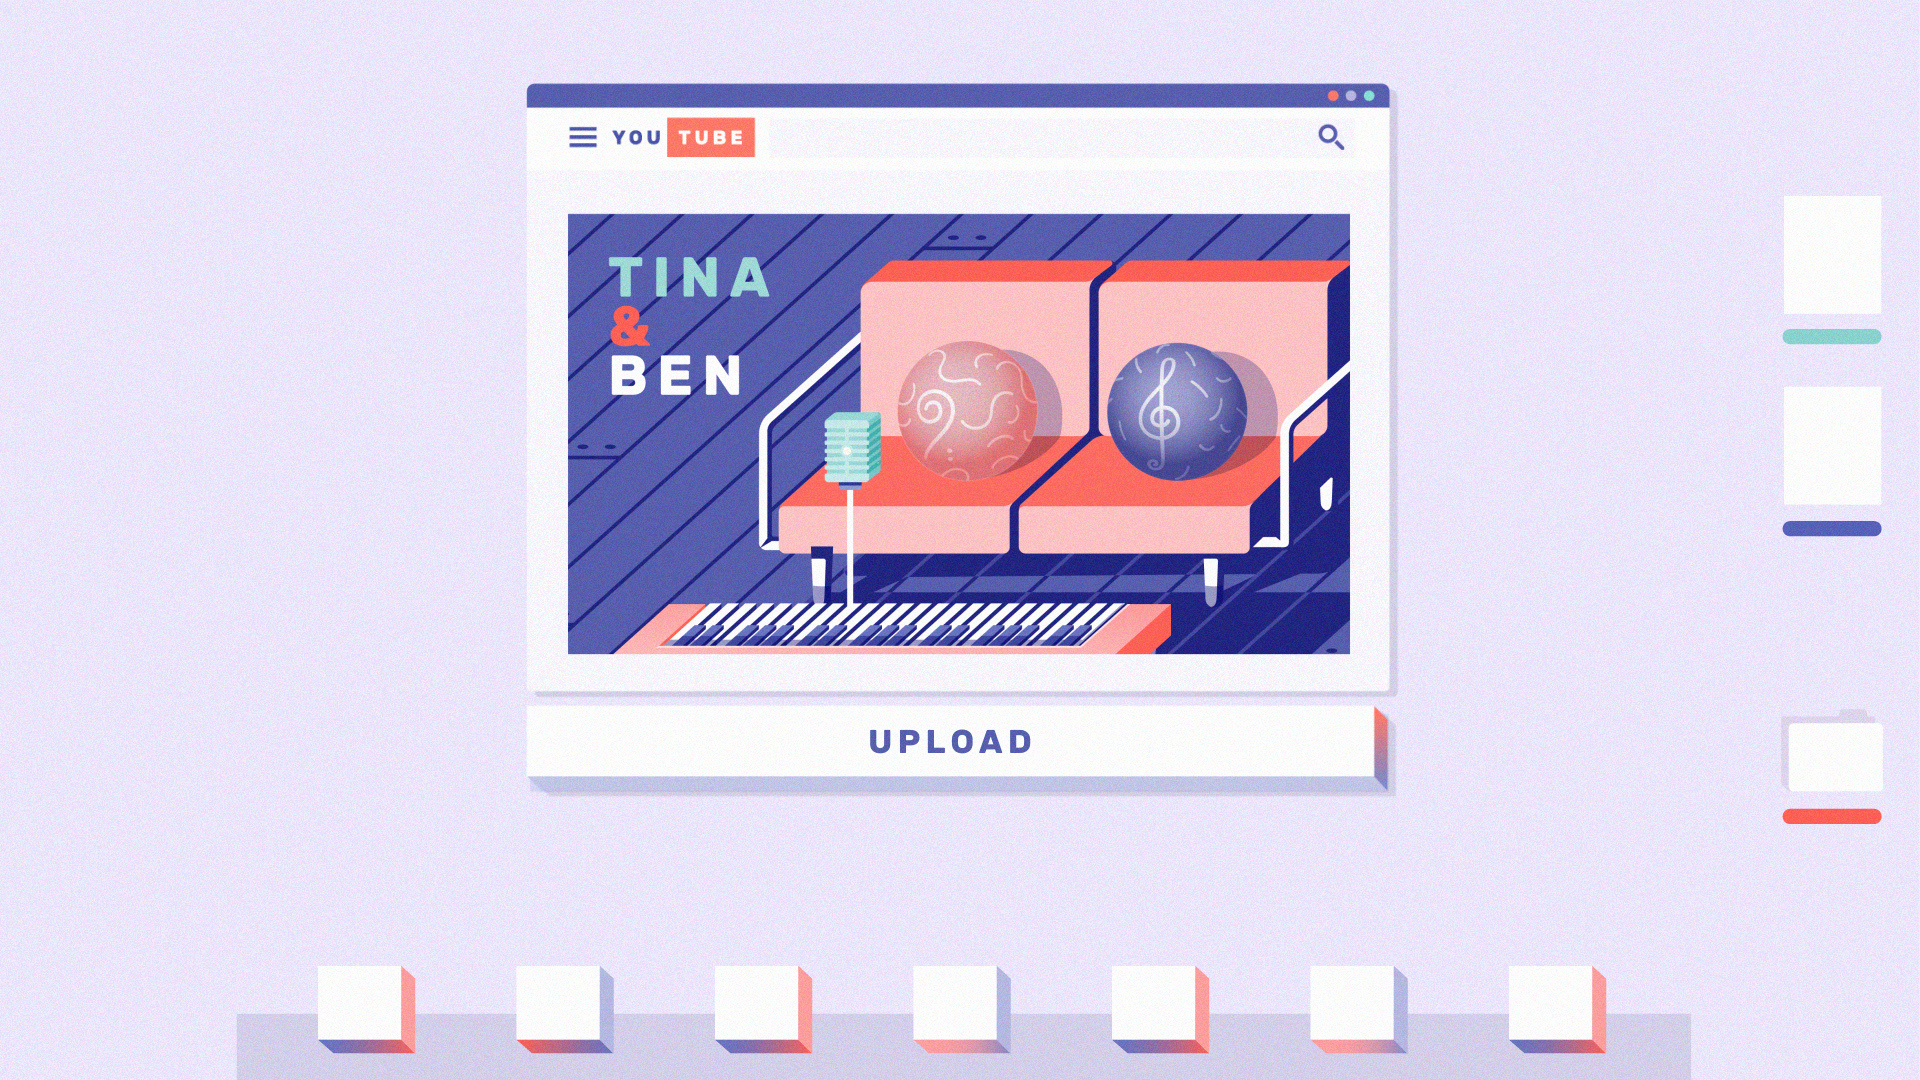 Image of music file from Tina and Ben uploaded to music website.